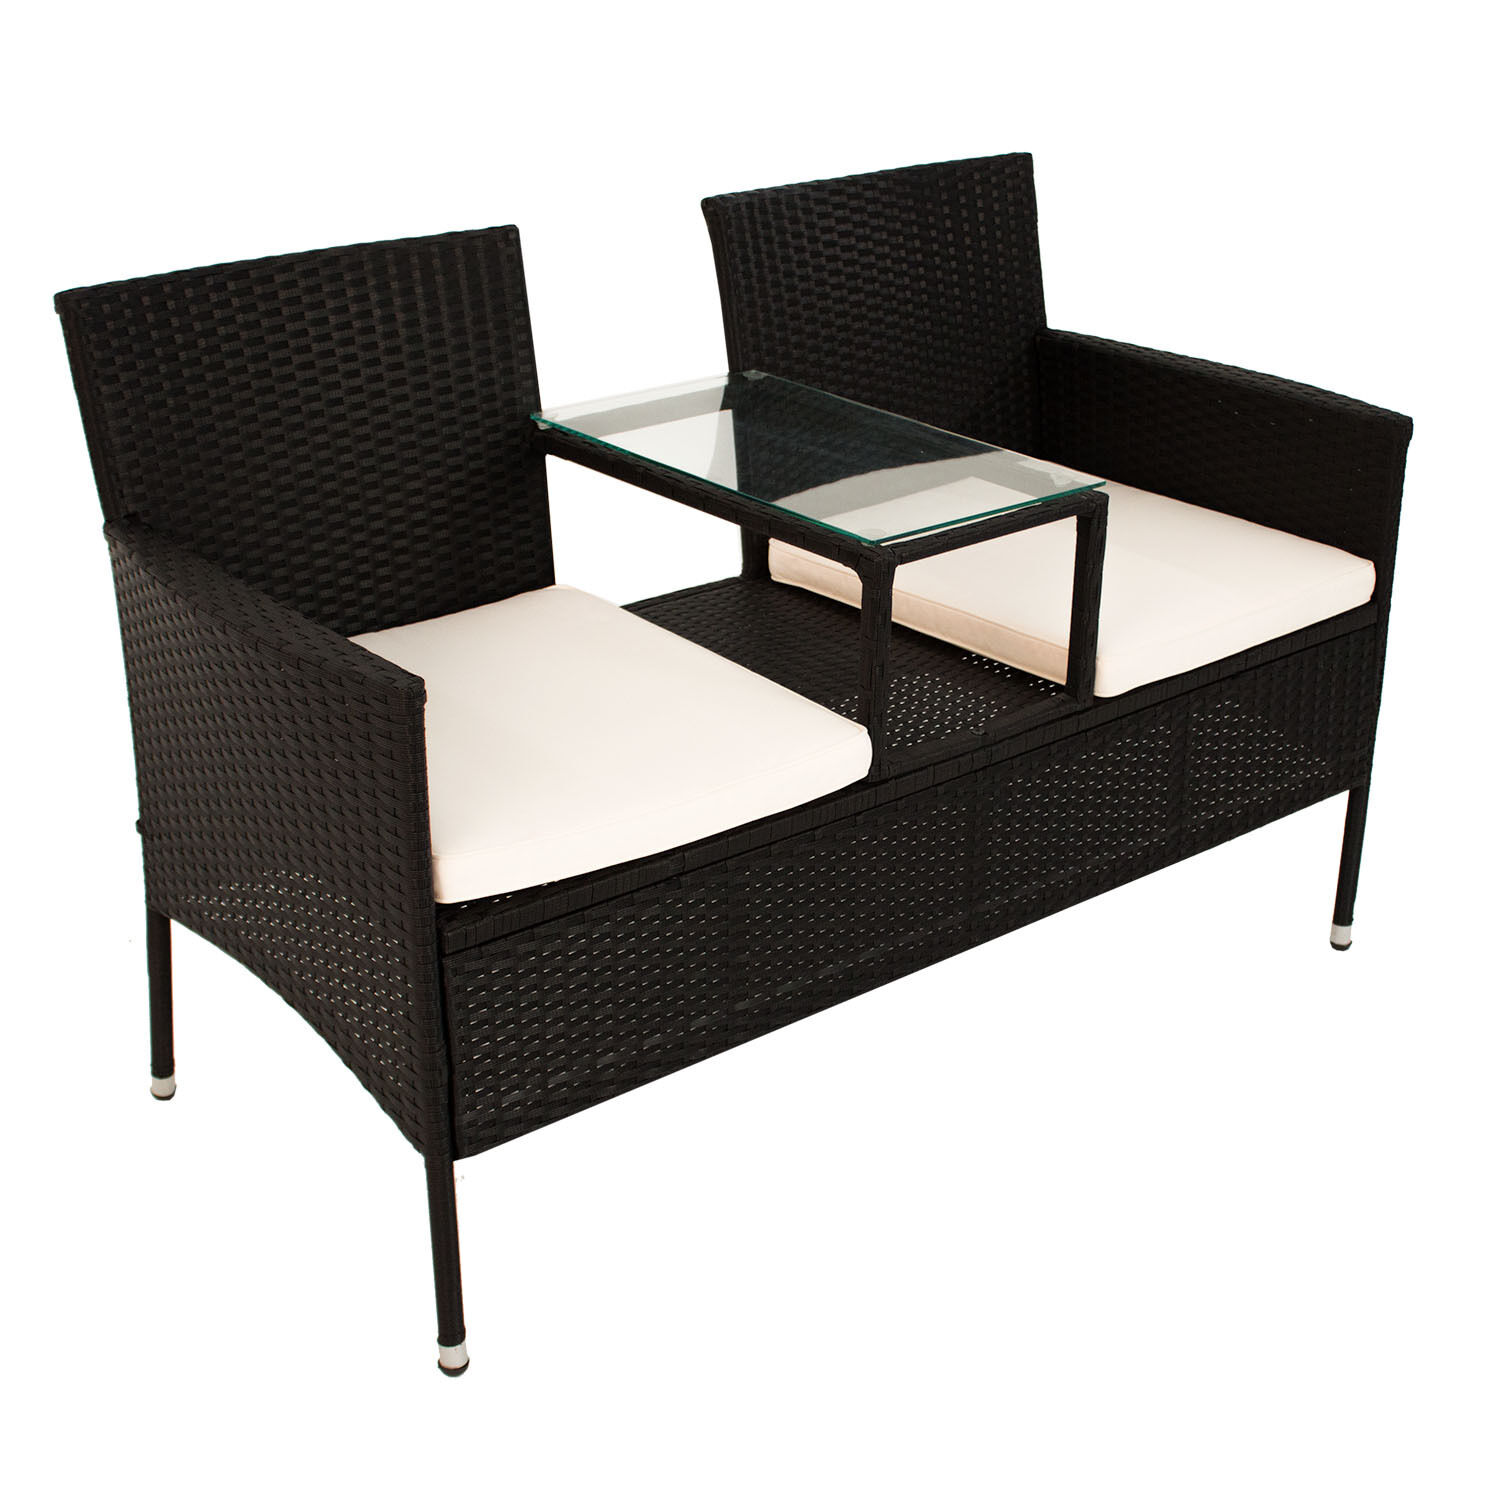 polyrattan gartenm bel gartenbank sitzbank mit tisch sitzgruppe garnitur poly eur 129 95. Black Bedroom Furniture Sets. Home Design Ideas